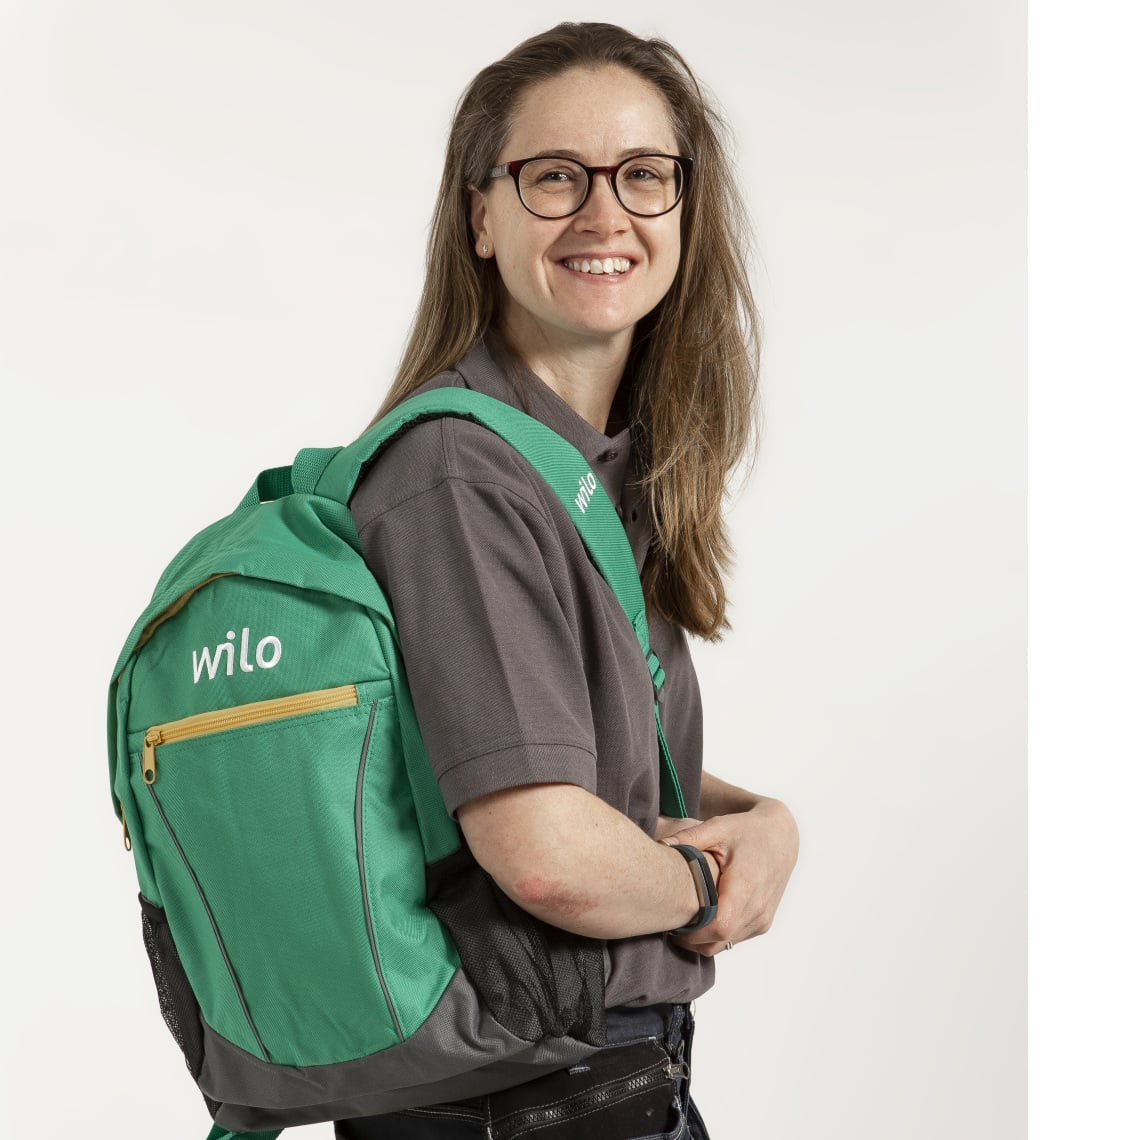 UK influencer Becky Bates with Wilo backpack